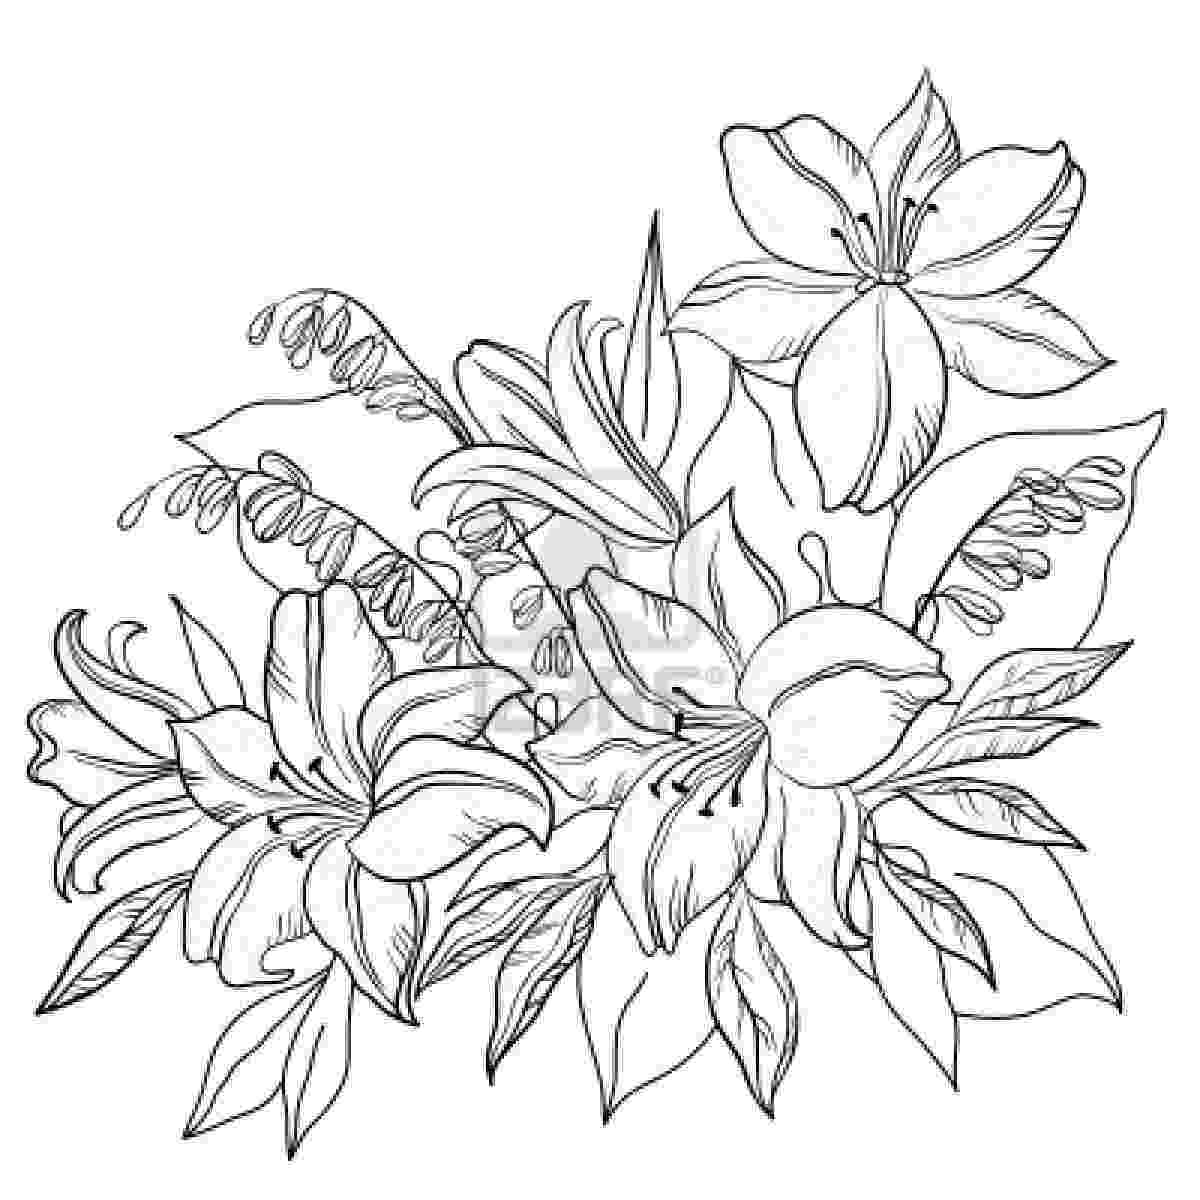 pics of flowers to color free printable flower coloring pages for kids best pics to of flowers color